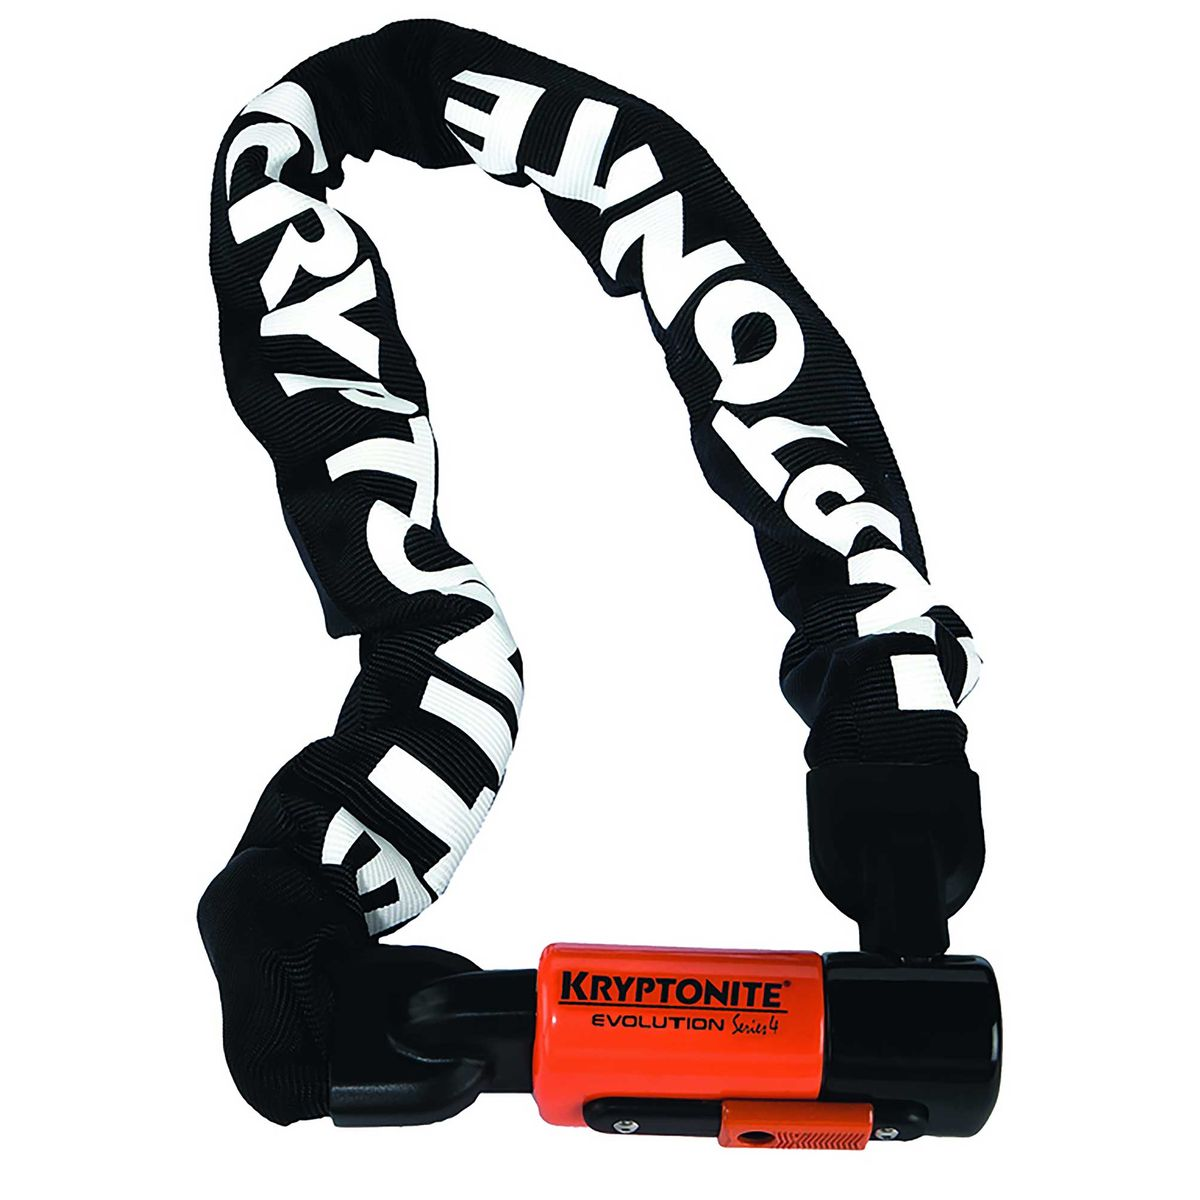 Evolution Series 4 Integrated Chain 1090 chain lock